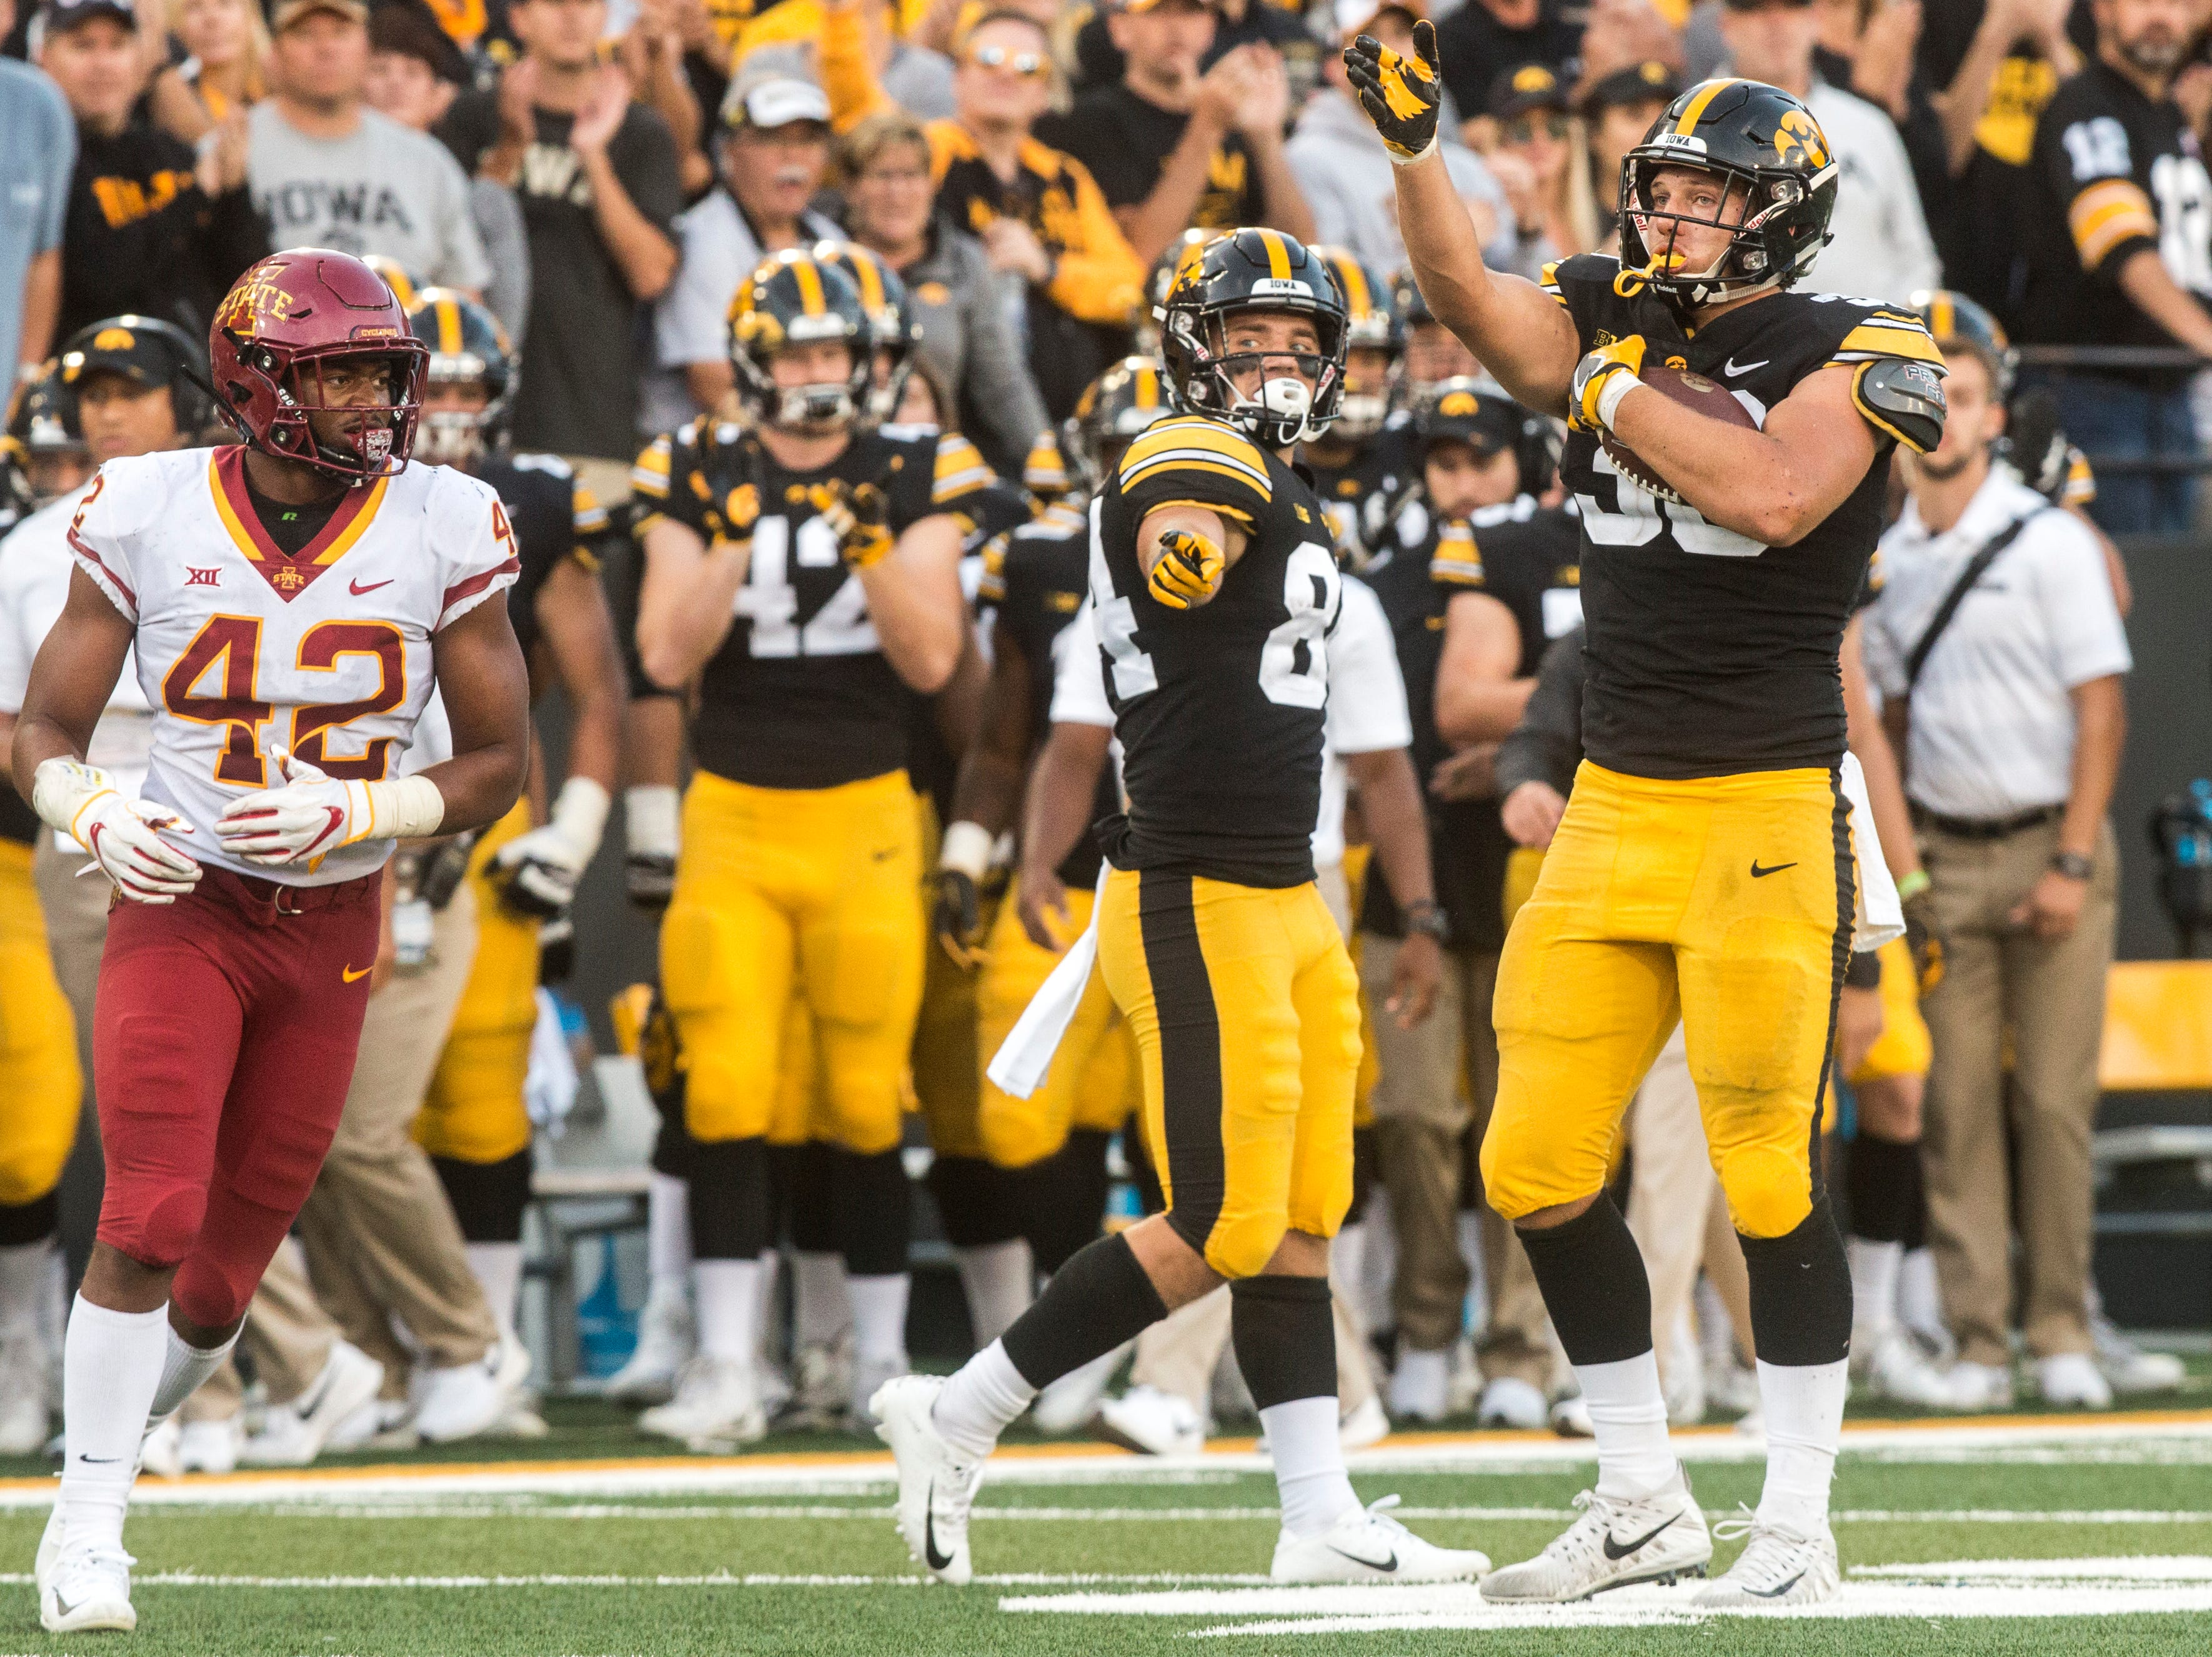 Leistikow: Now that T.J. Hockenson's gone, here are 5 questions facing the 2019 Hawkeyes